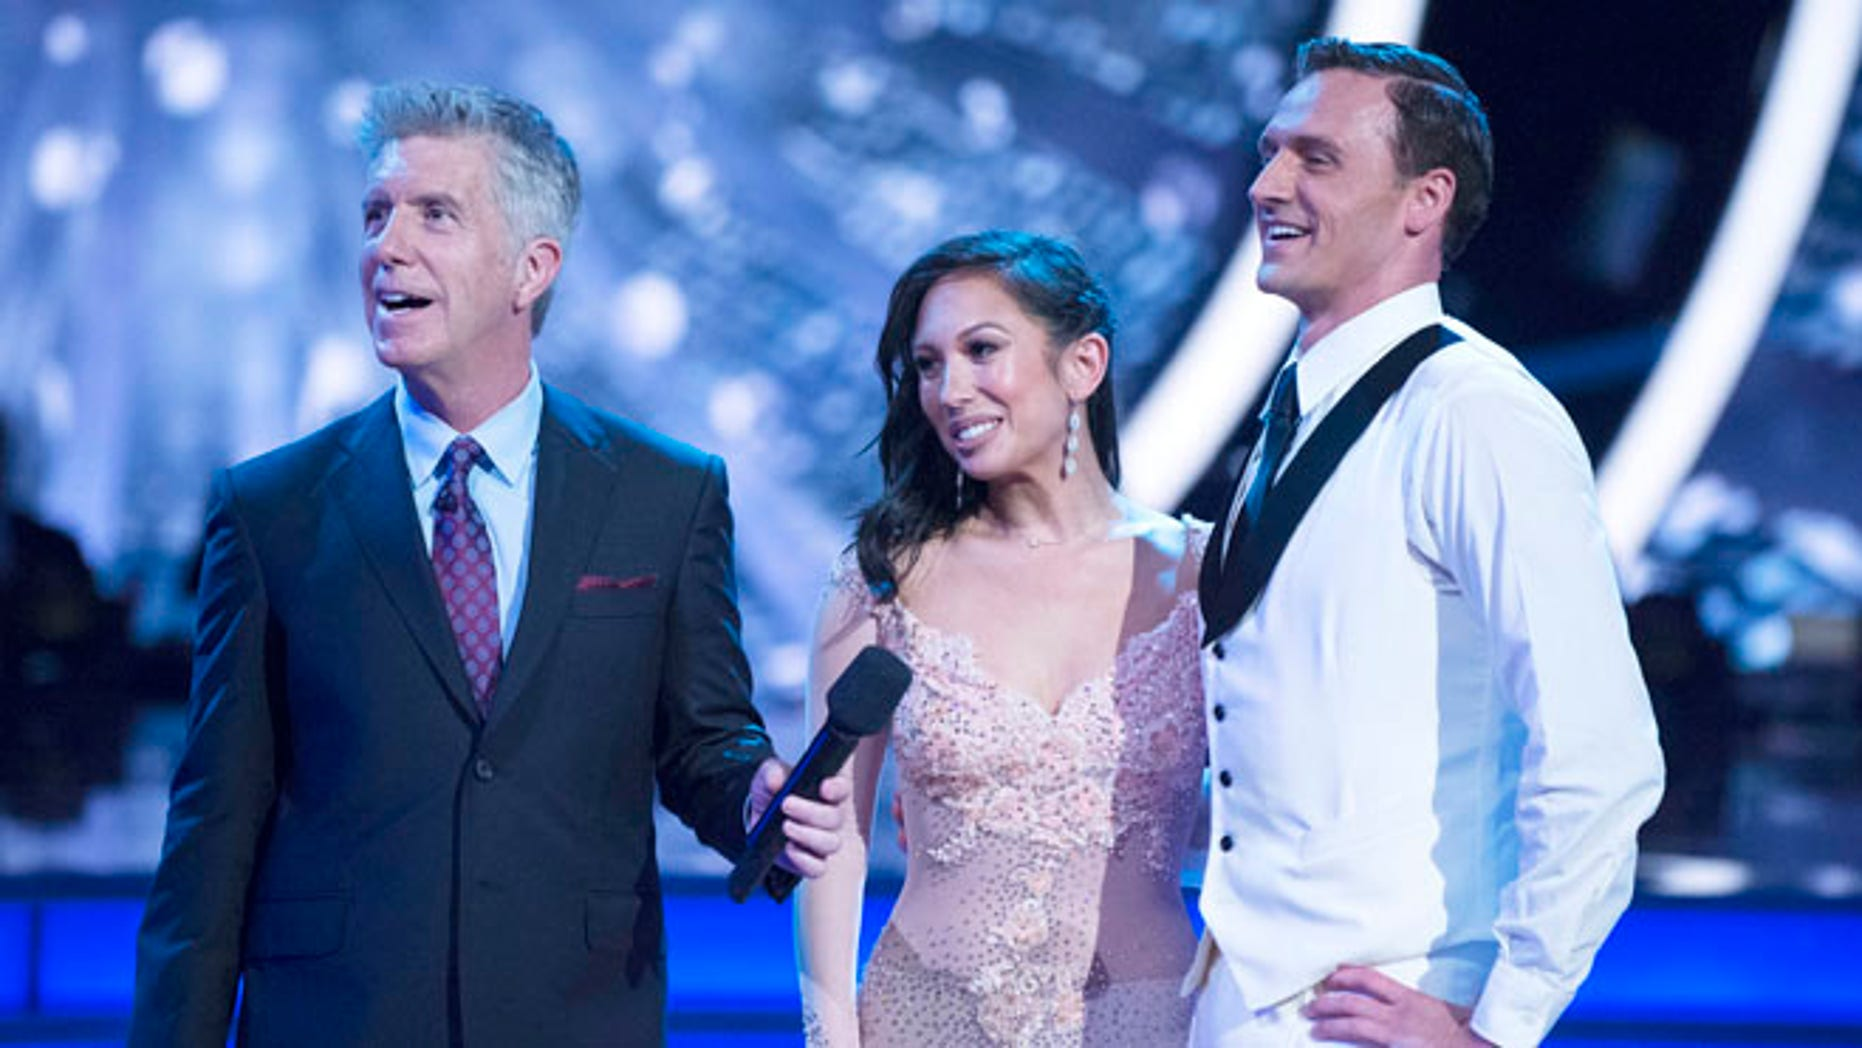 """In this Sept. 12, 2016 photo released by ABC, host Tom Bergeron, from left, appears with Cheryl Burke and US Olympic swimmer Ryan Lochte during a broadcast of the celebrity dance competition series, """"Dancing with the Stars,"""" in Los Angeles. (Eric McCandless/ABC via AP)"""